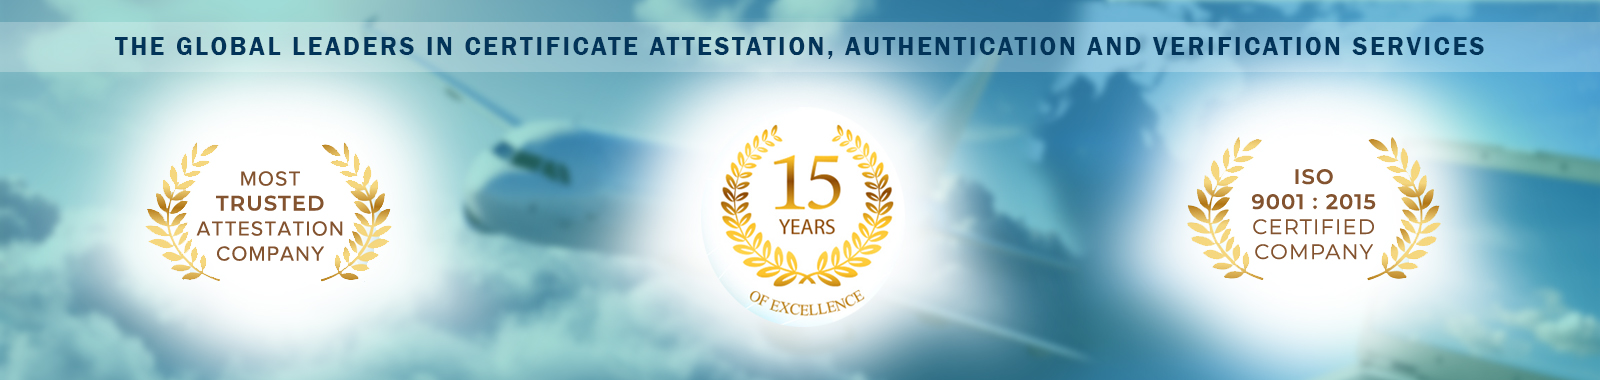 attestation services